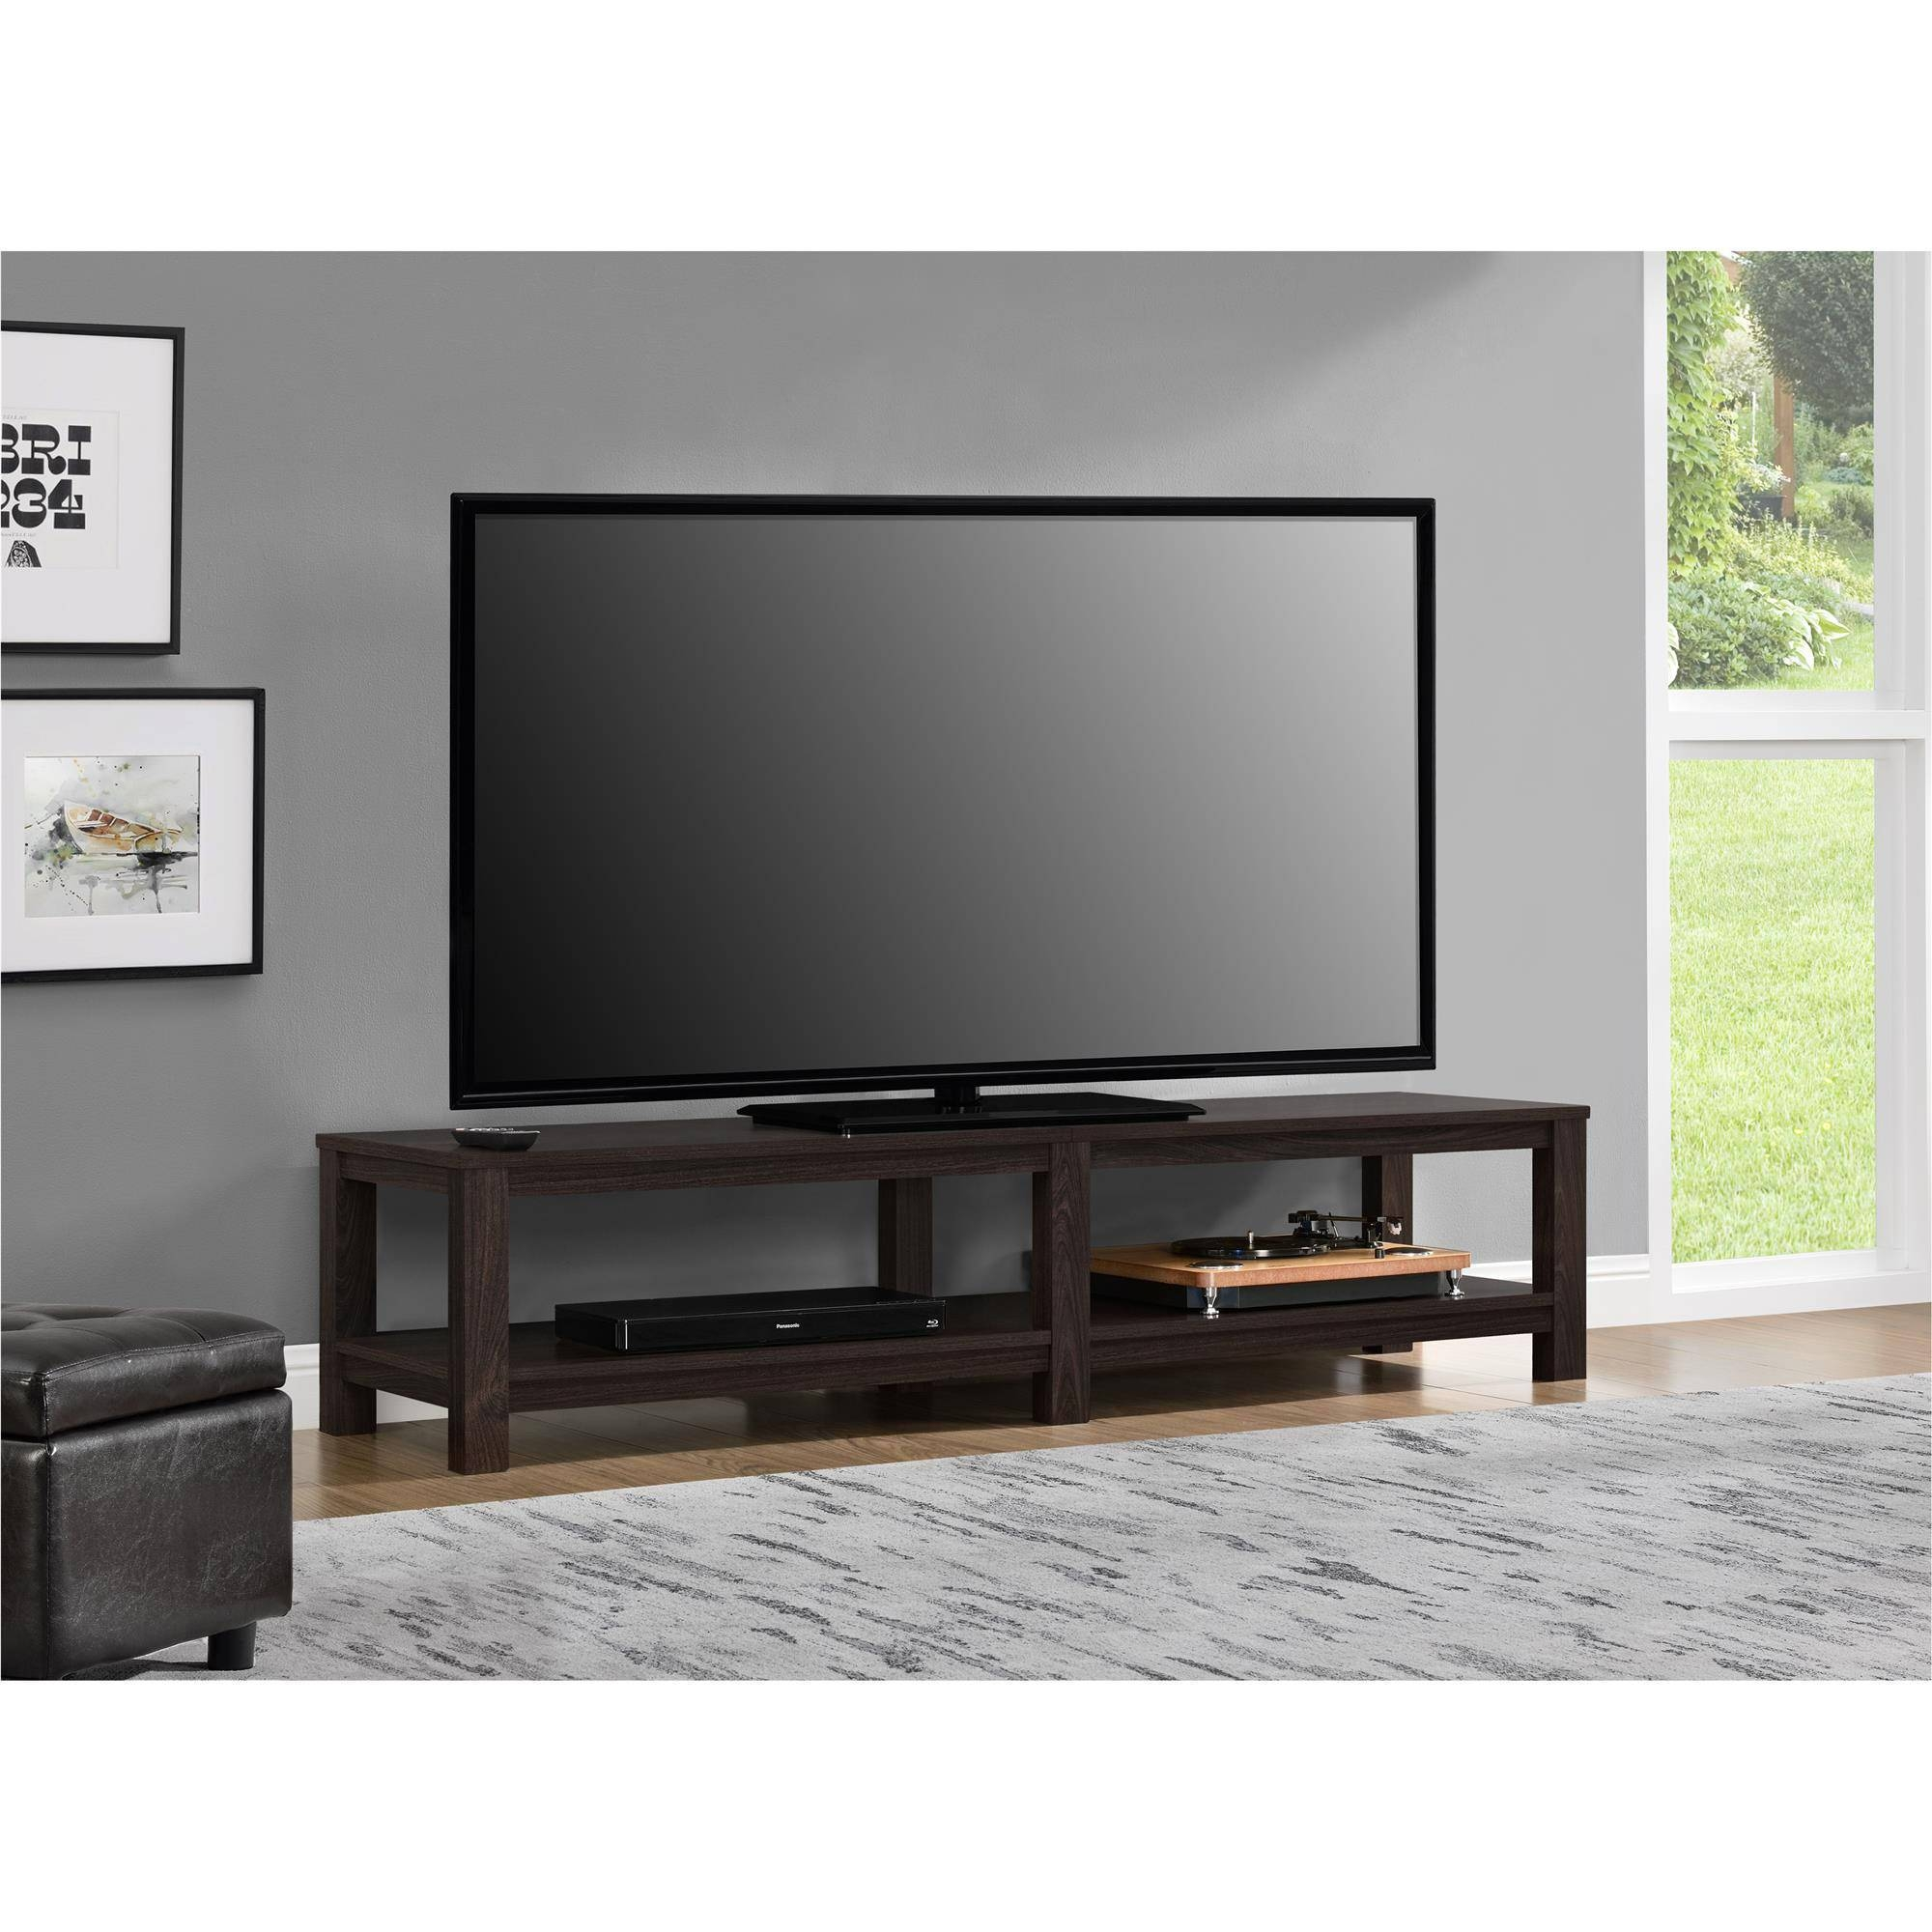 Tv Stands & Entertainment Centers - Walmart in Cabinet Tv Stands (Image 11 of 15)